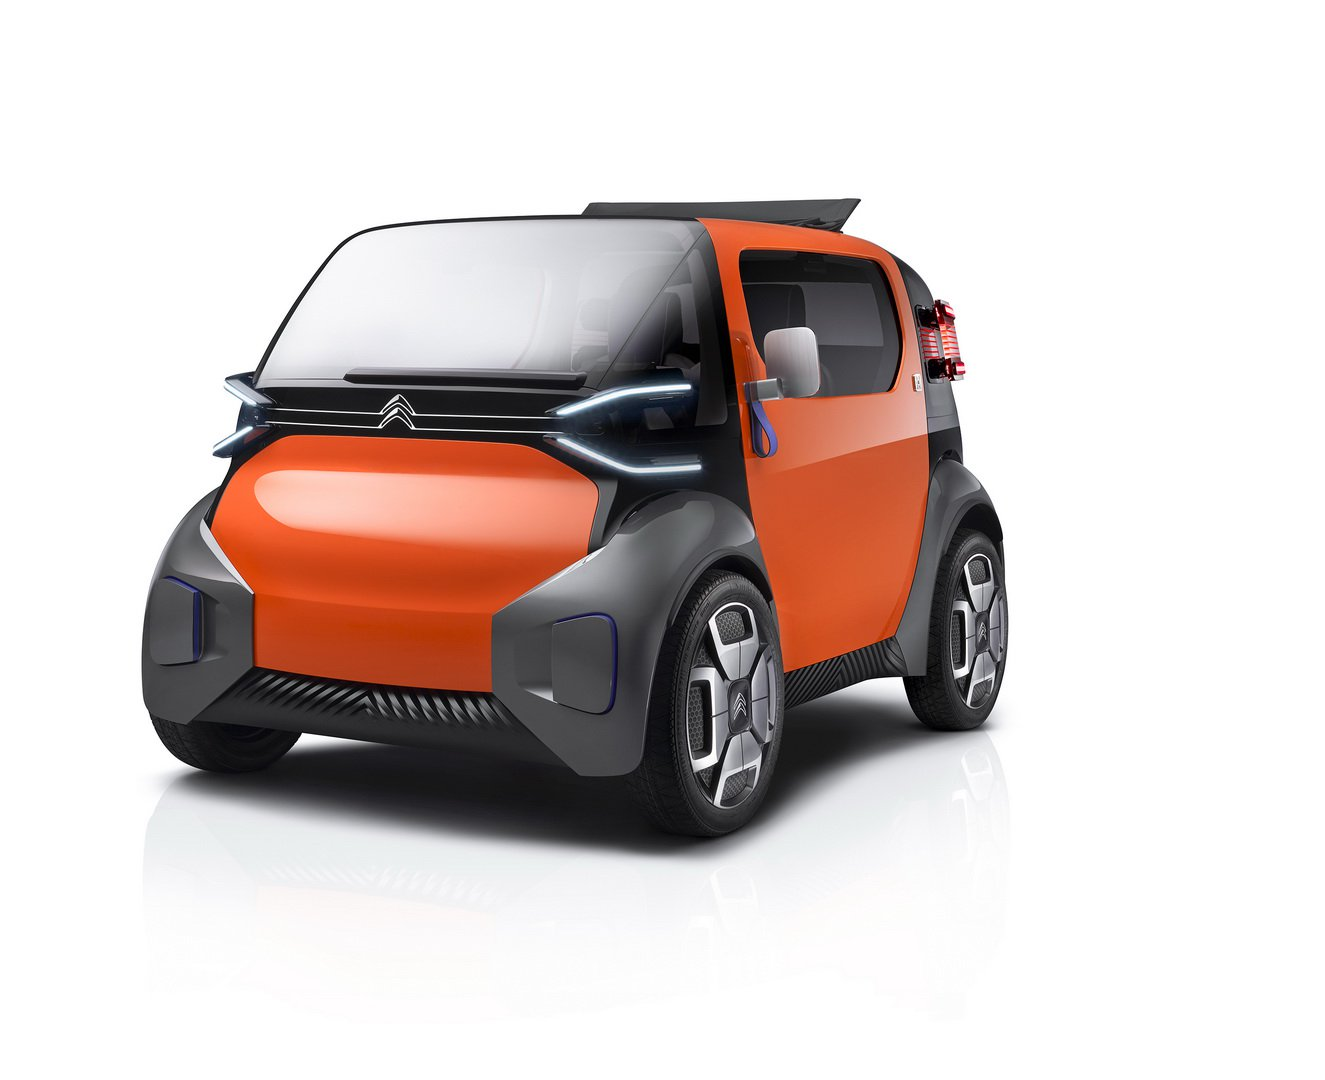 Car manufacturer Citroen has revealed further details about its upcoming supermini EV